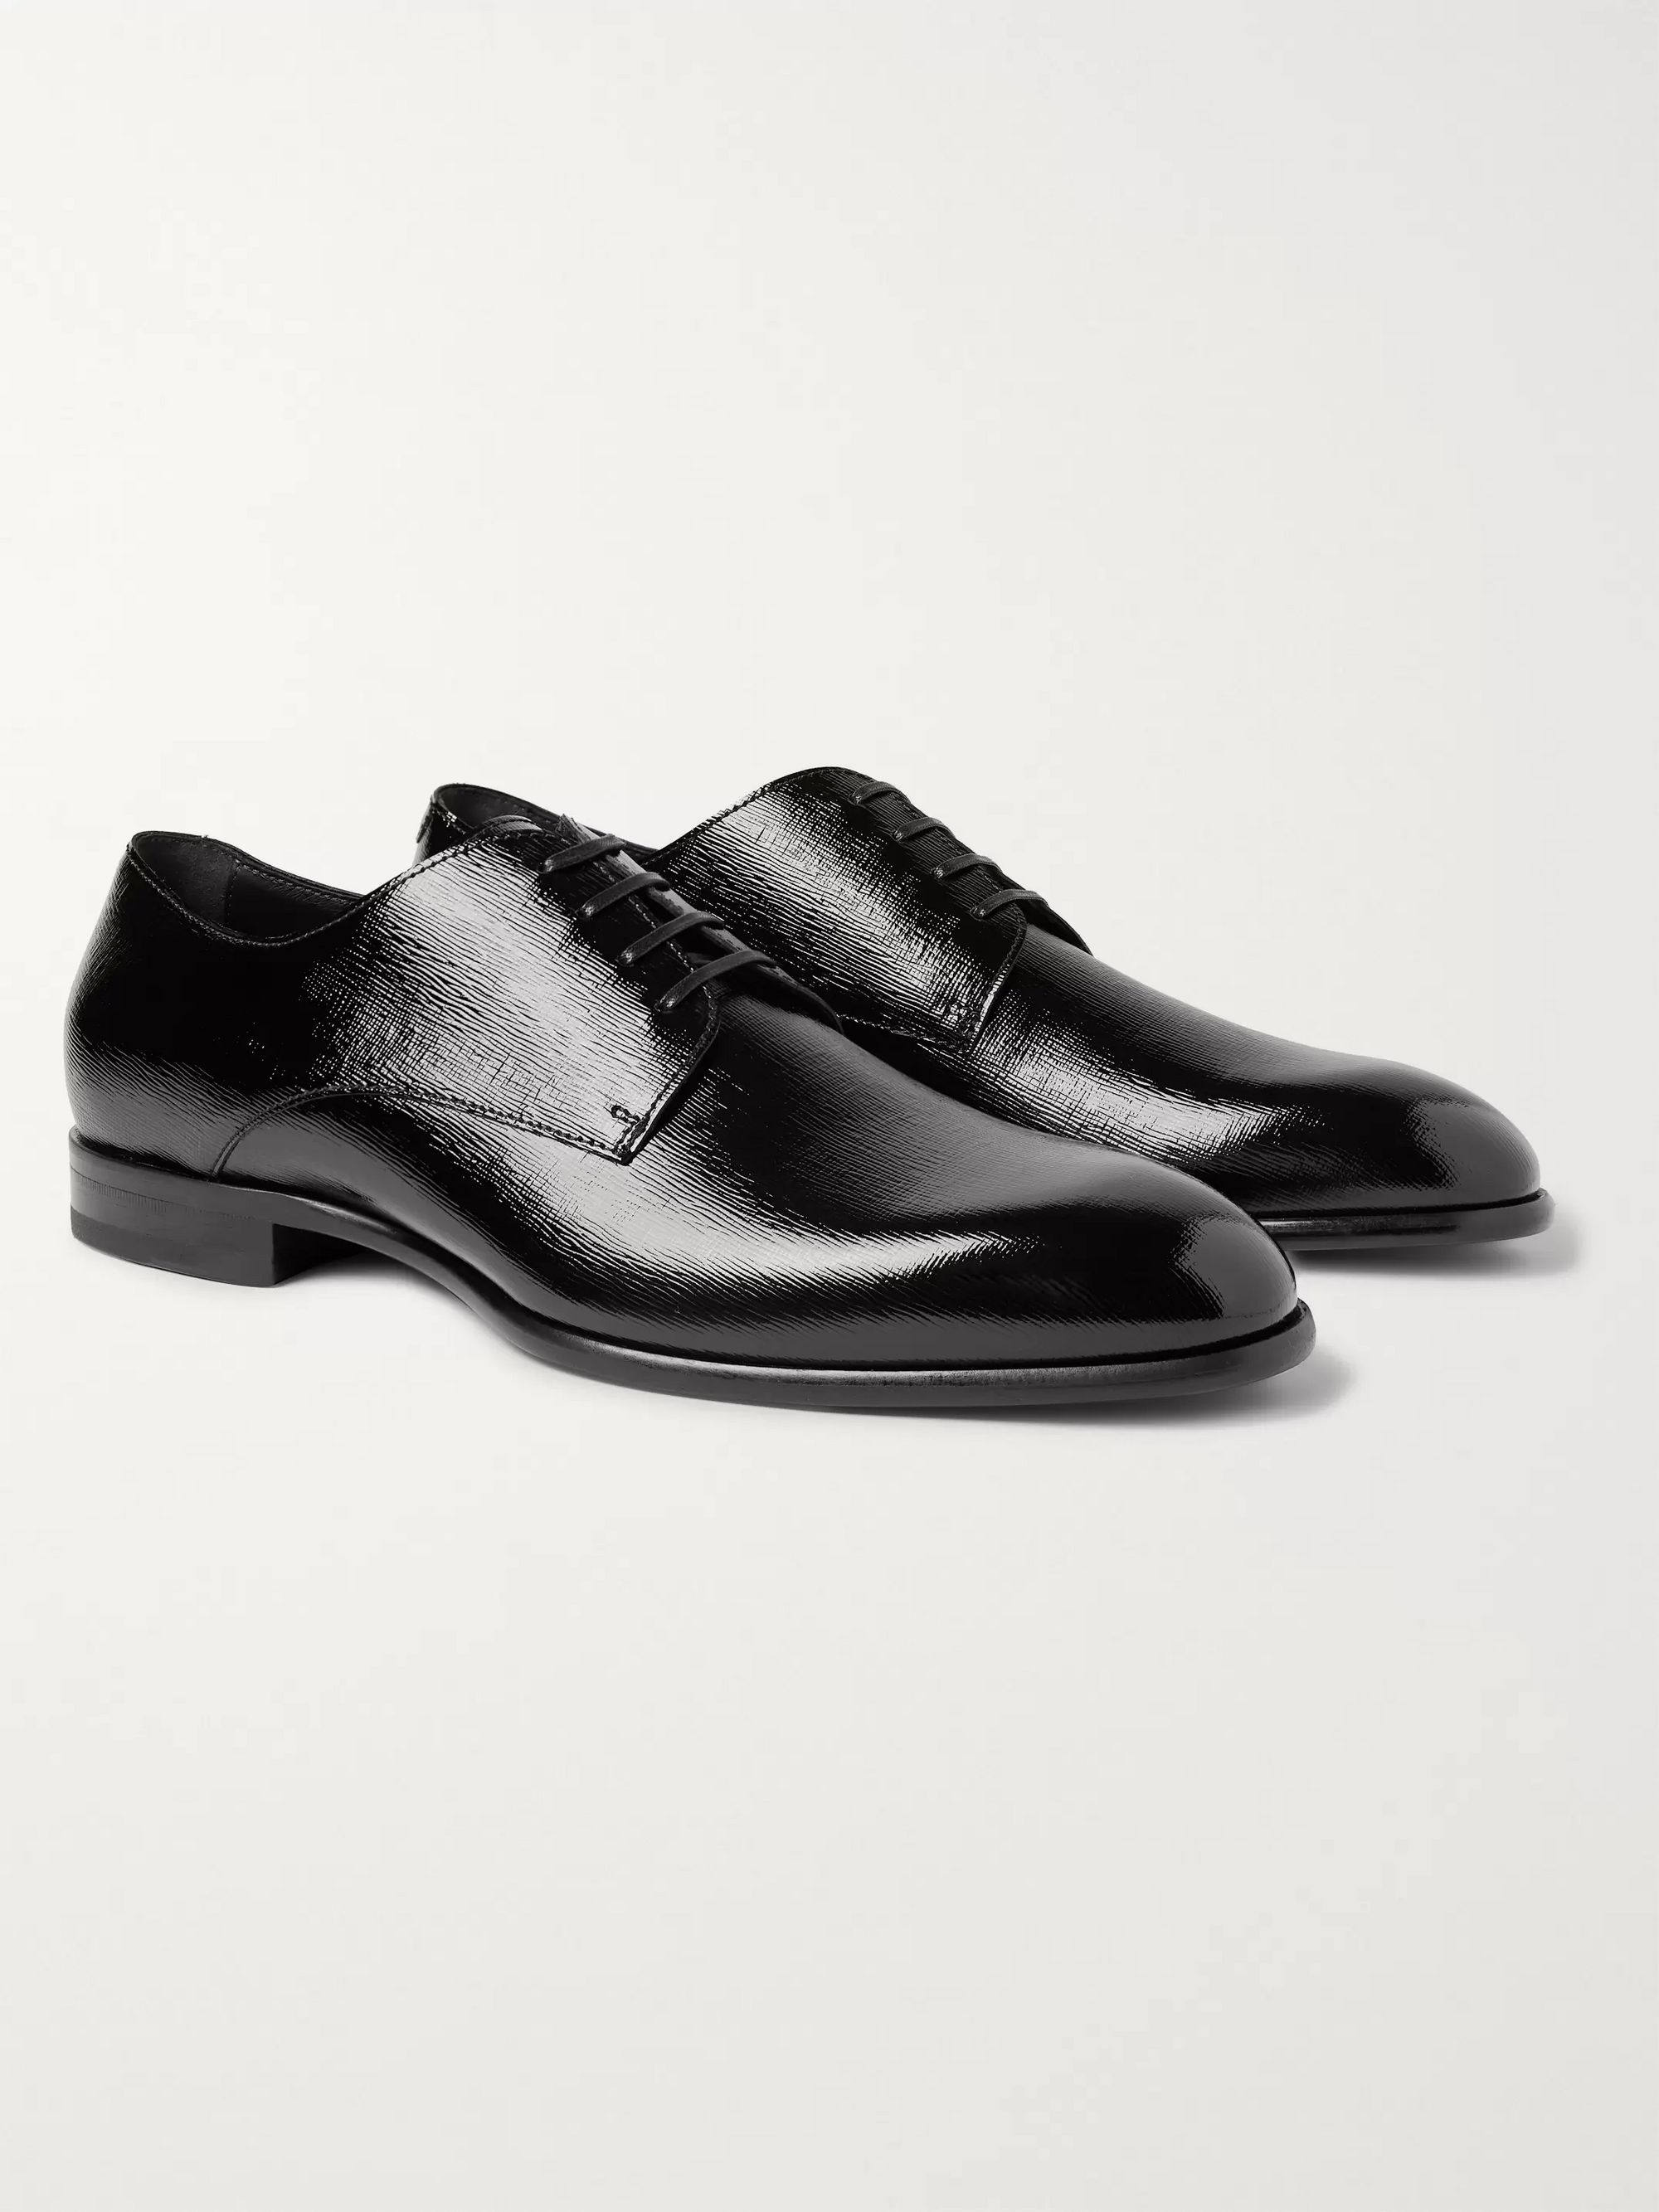 Hugo Boss Cannes Cross-Grain Leather Derby Shoes